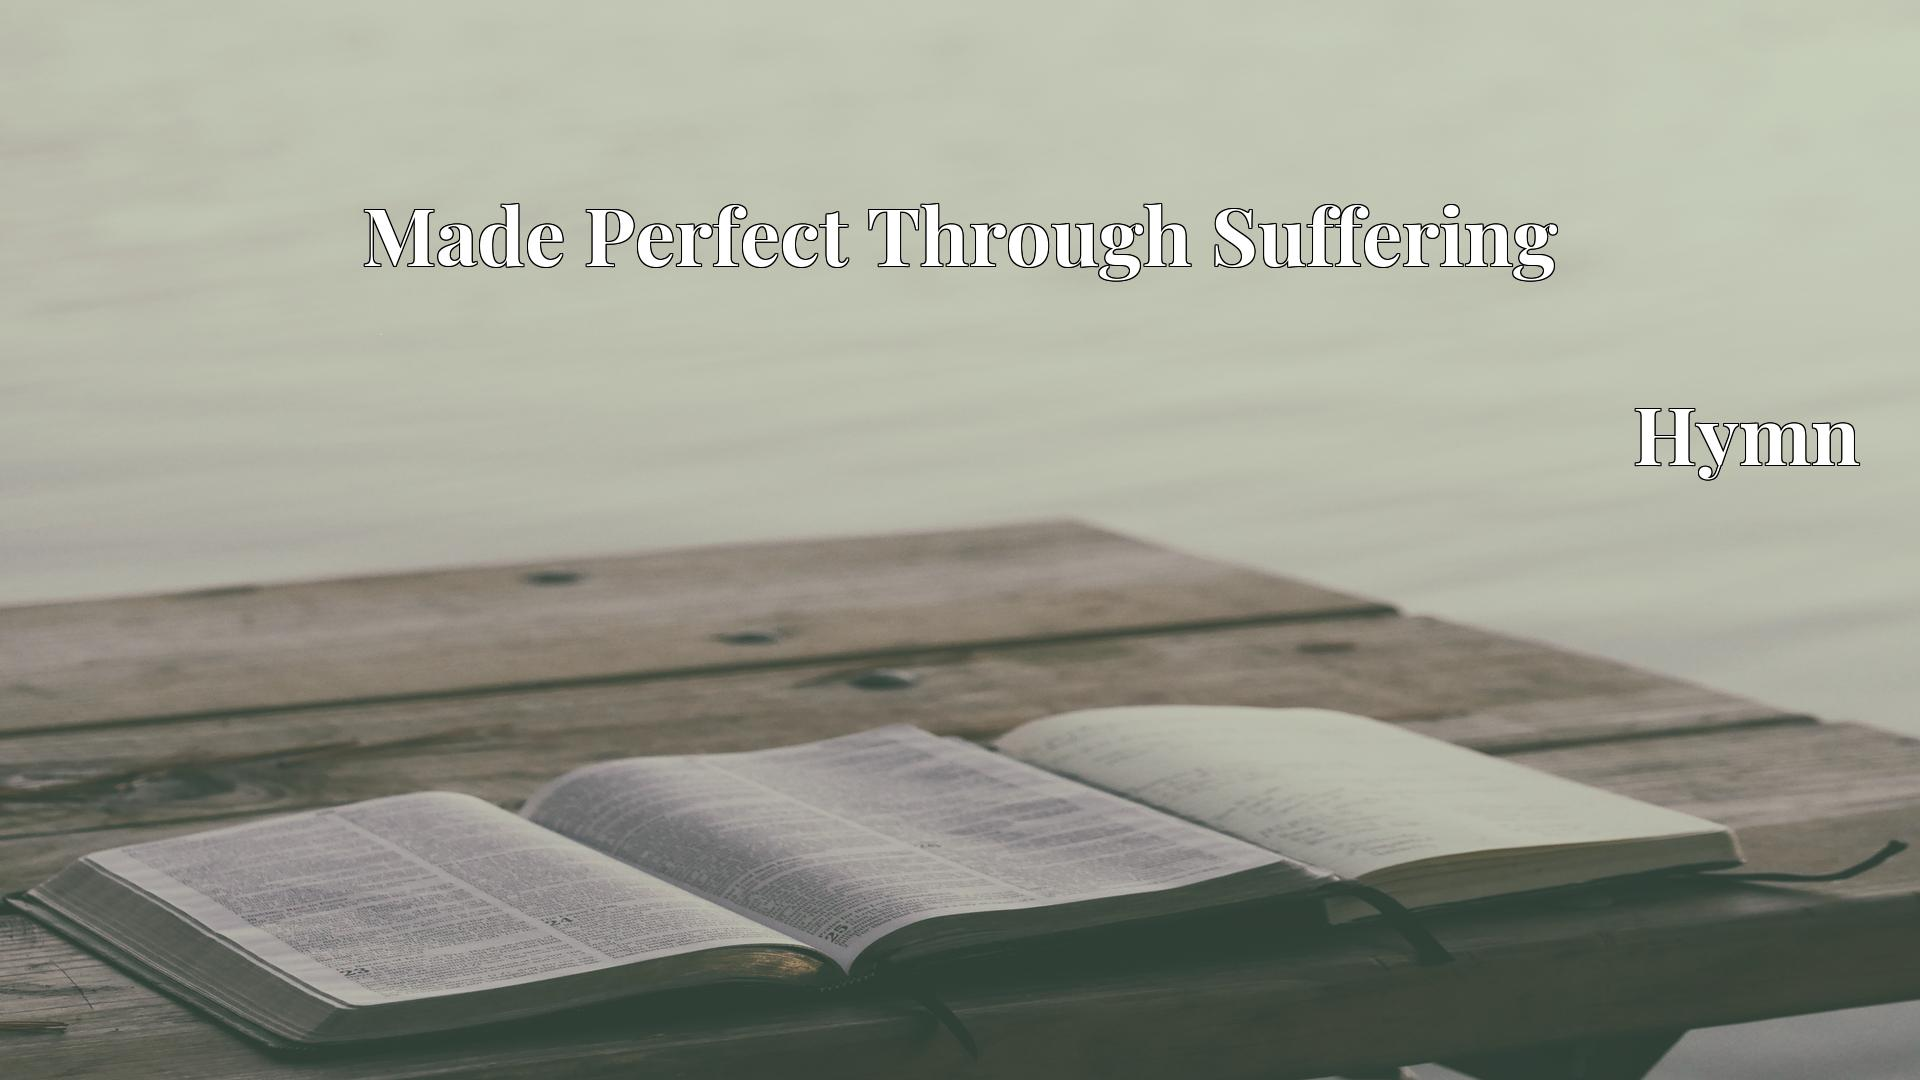 Made Perfect Through Suffering - Hymn